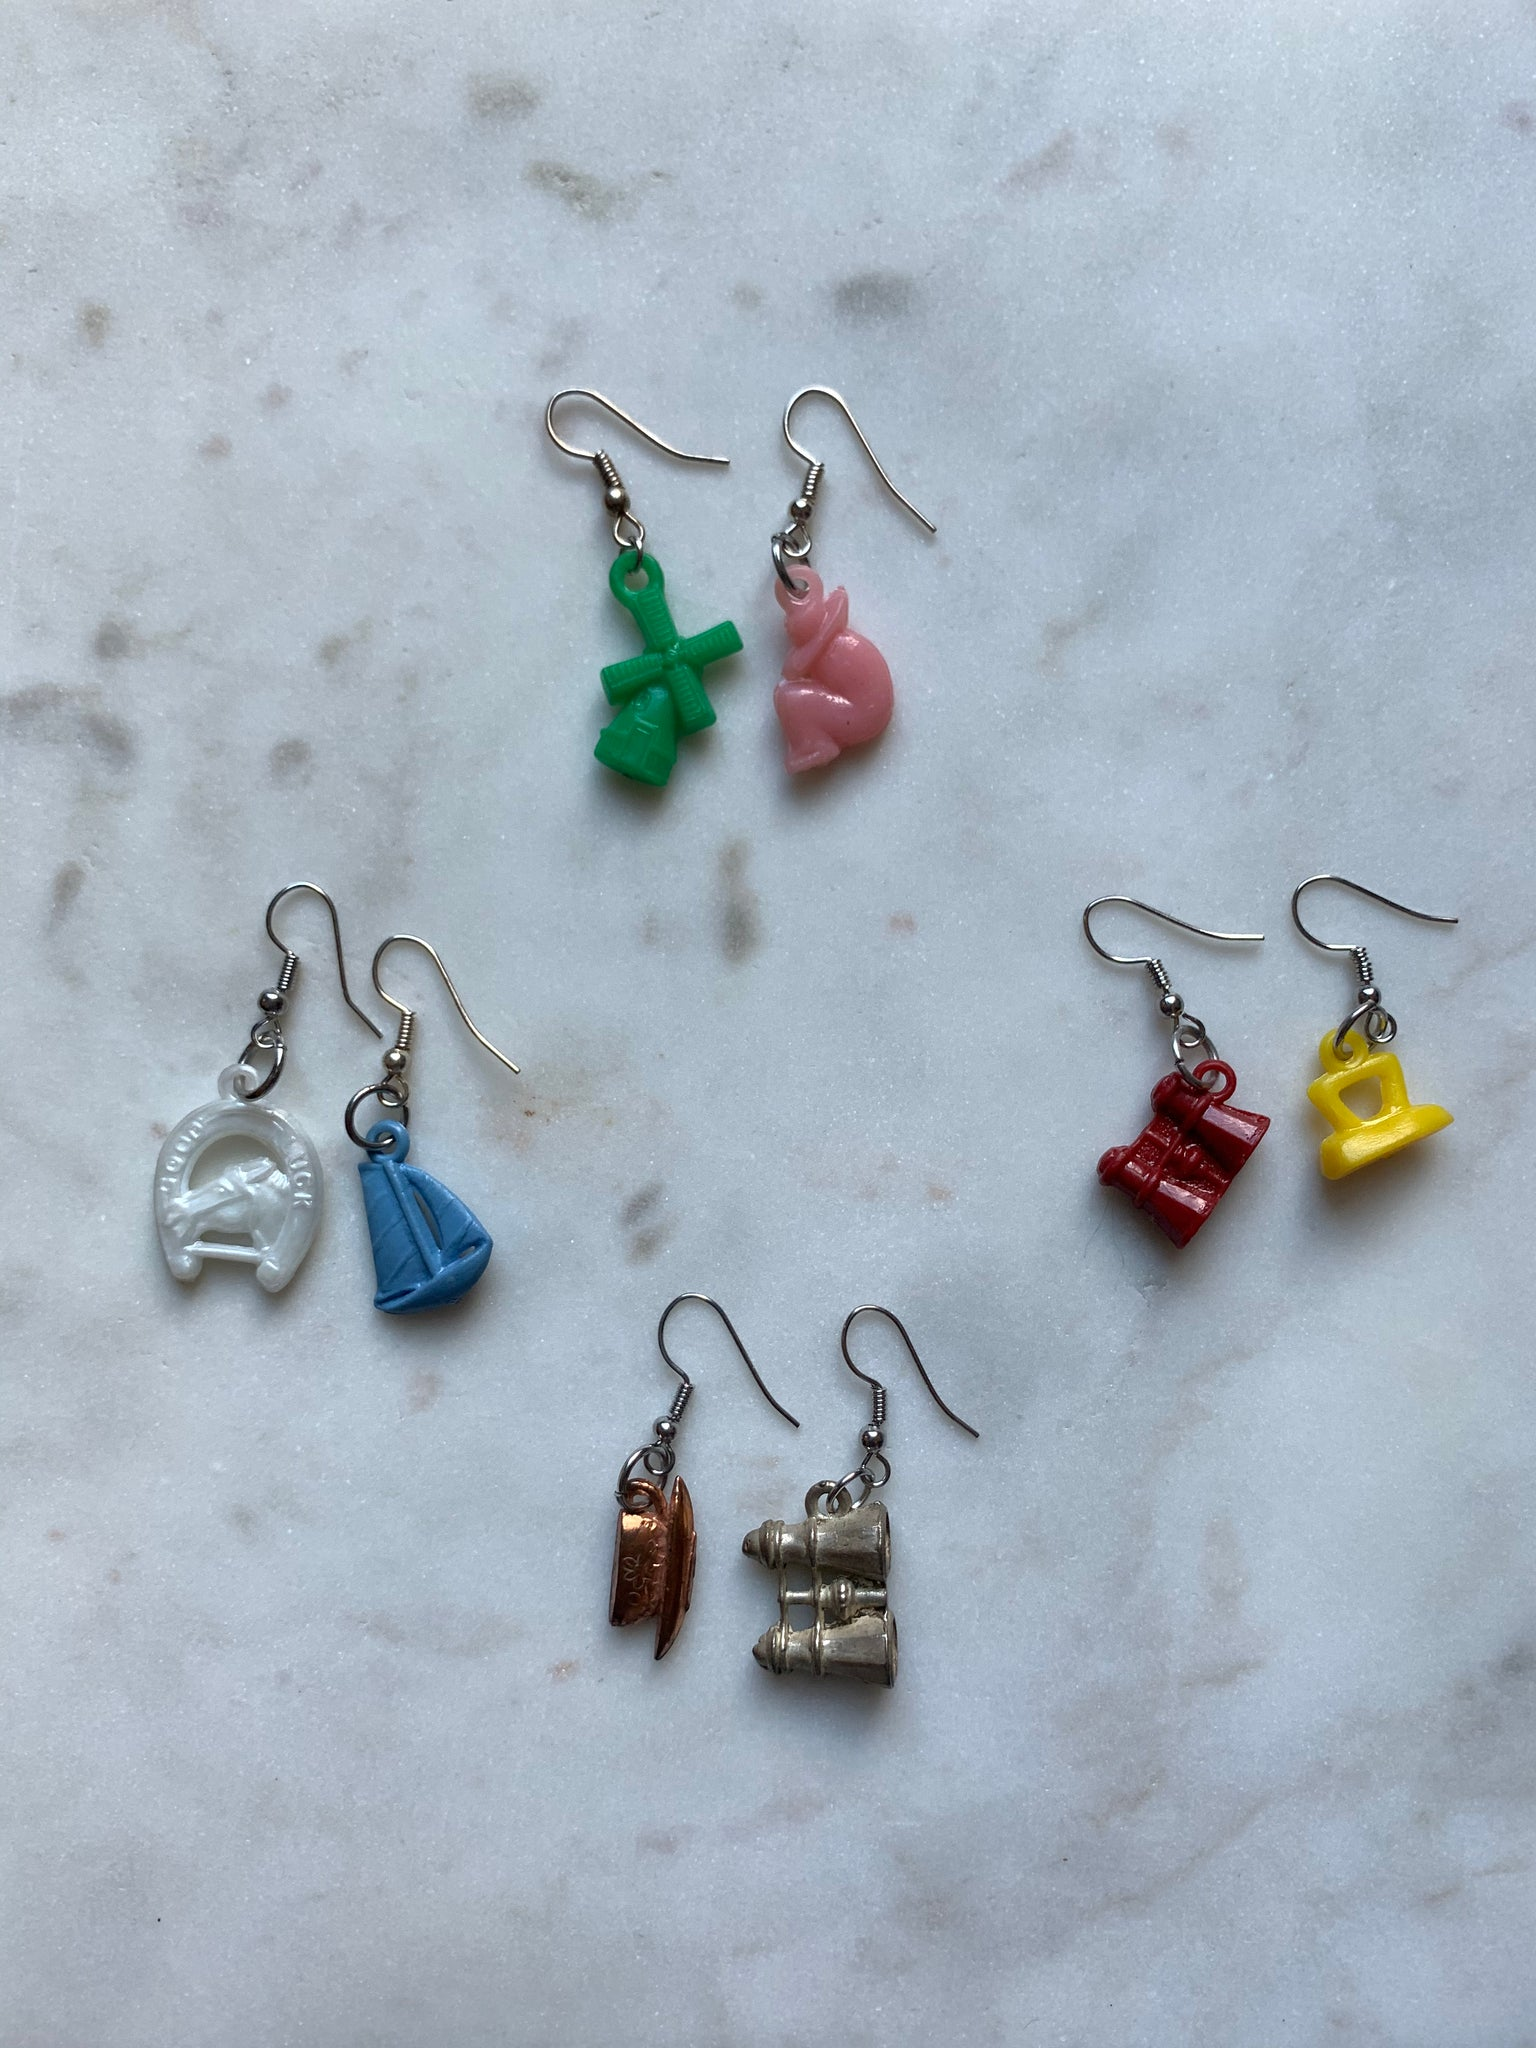 ORIGINAL CRACKER JACK BOX TOKEN EARRINGS | SET 4 OF 4